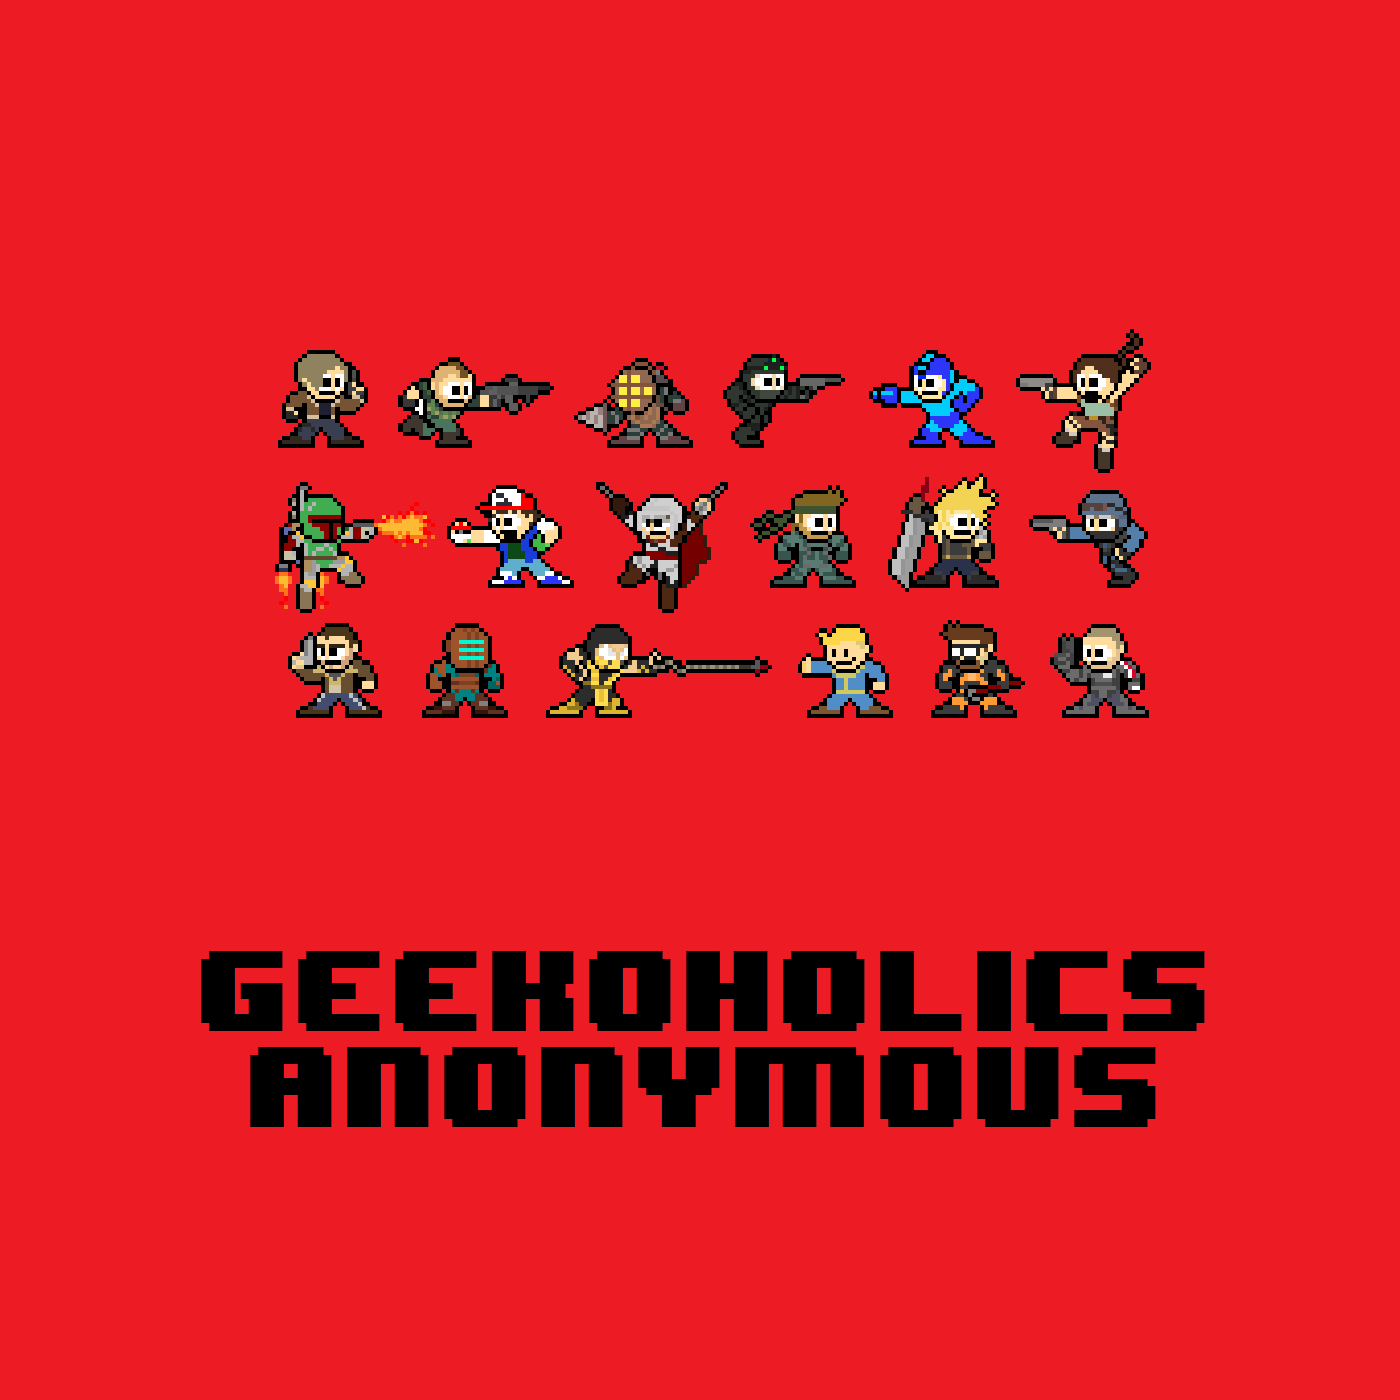 Hades, Microsoft buys Bethesda, Nvidia RTX 3080 Pre-order disaster and more - Geekoholics Anonymous Podcast 273 show art